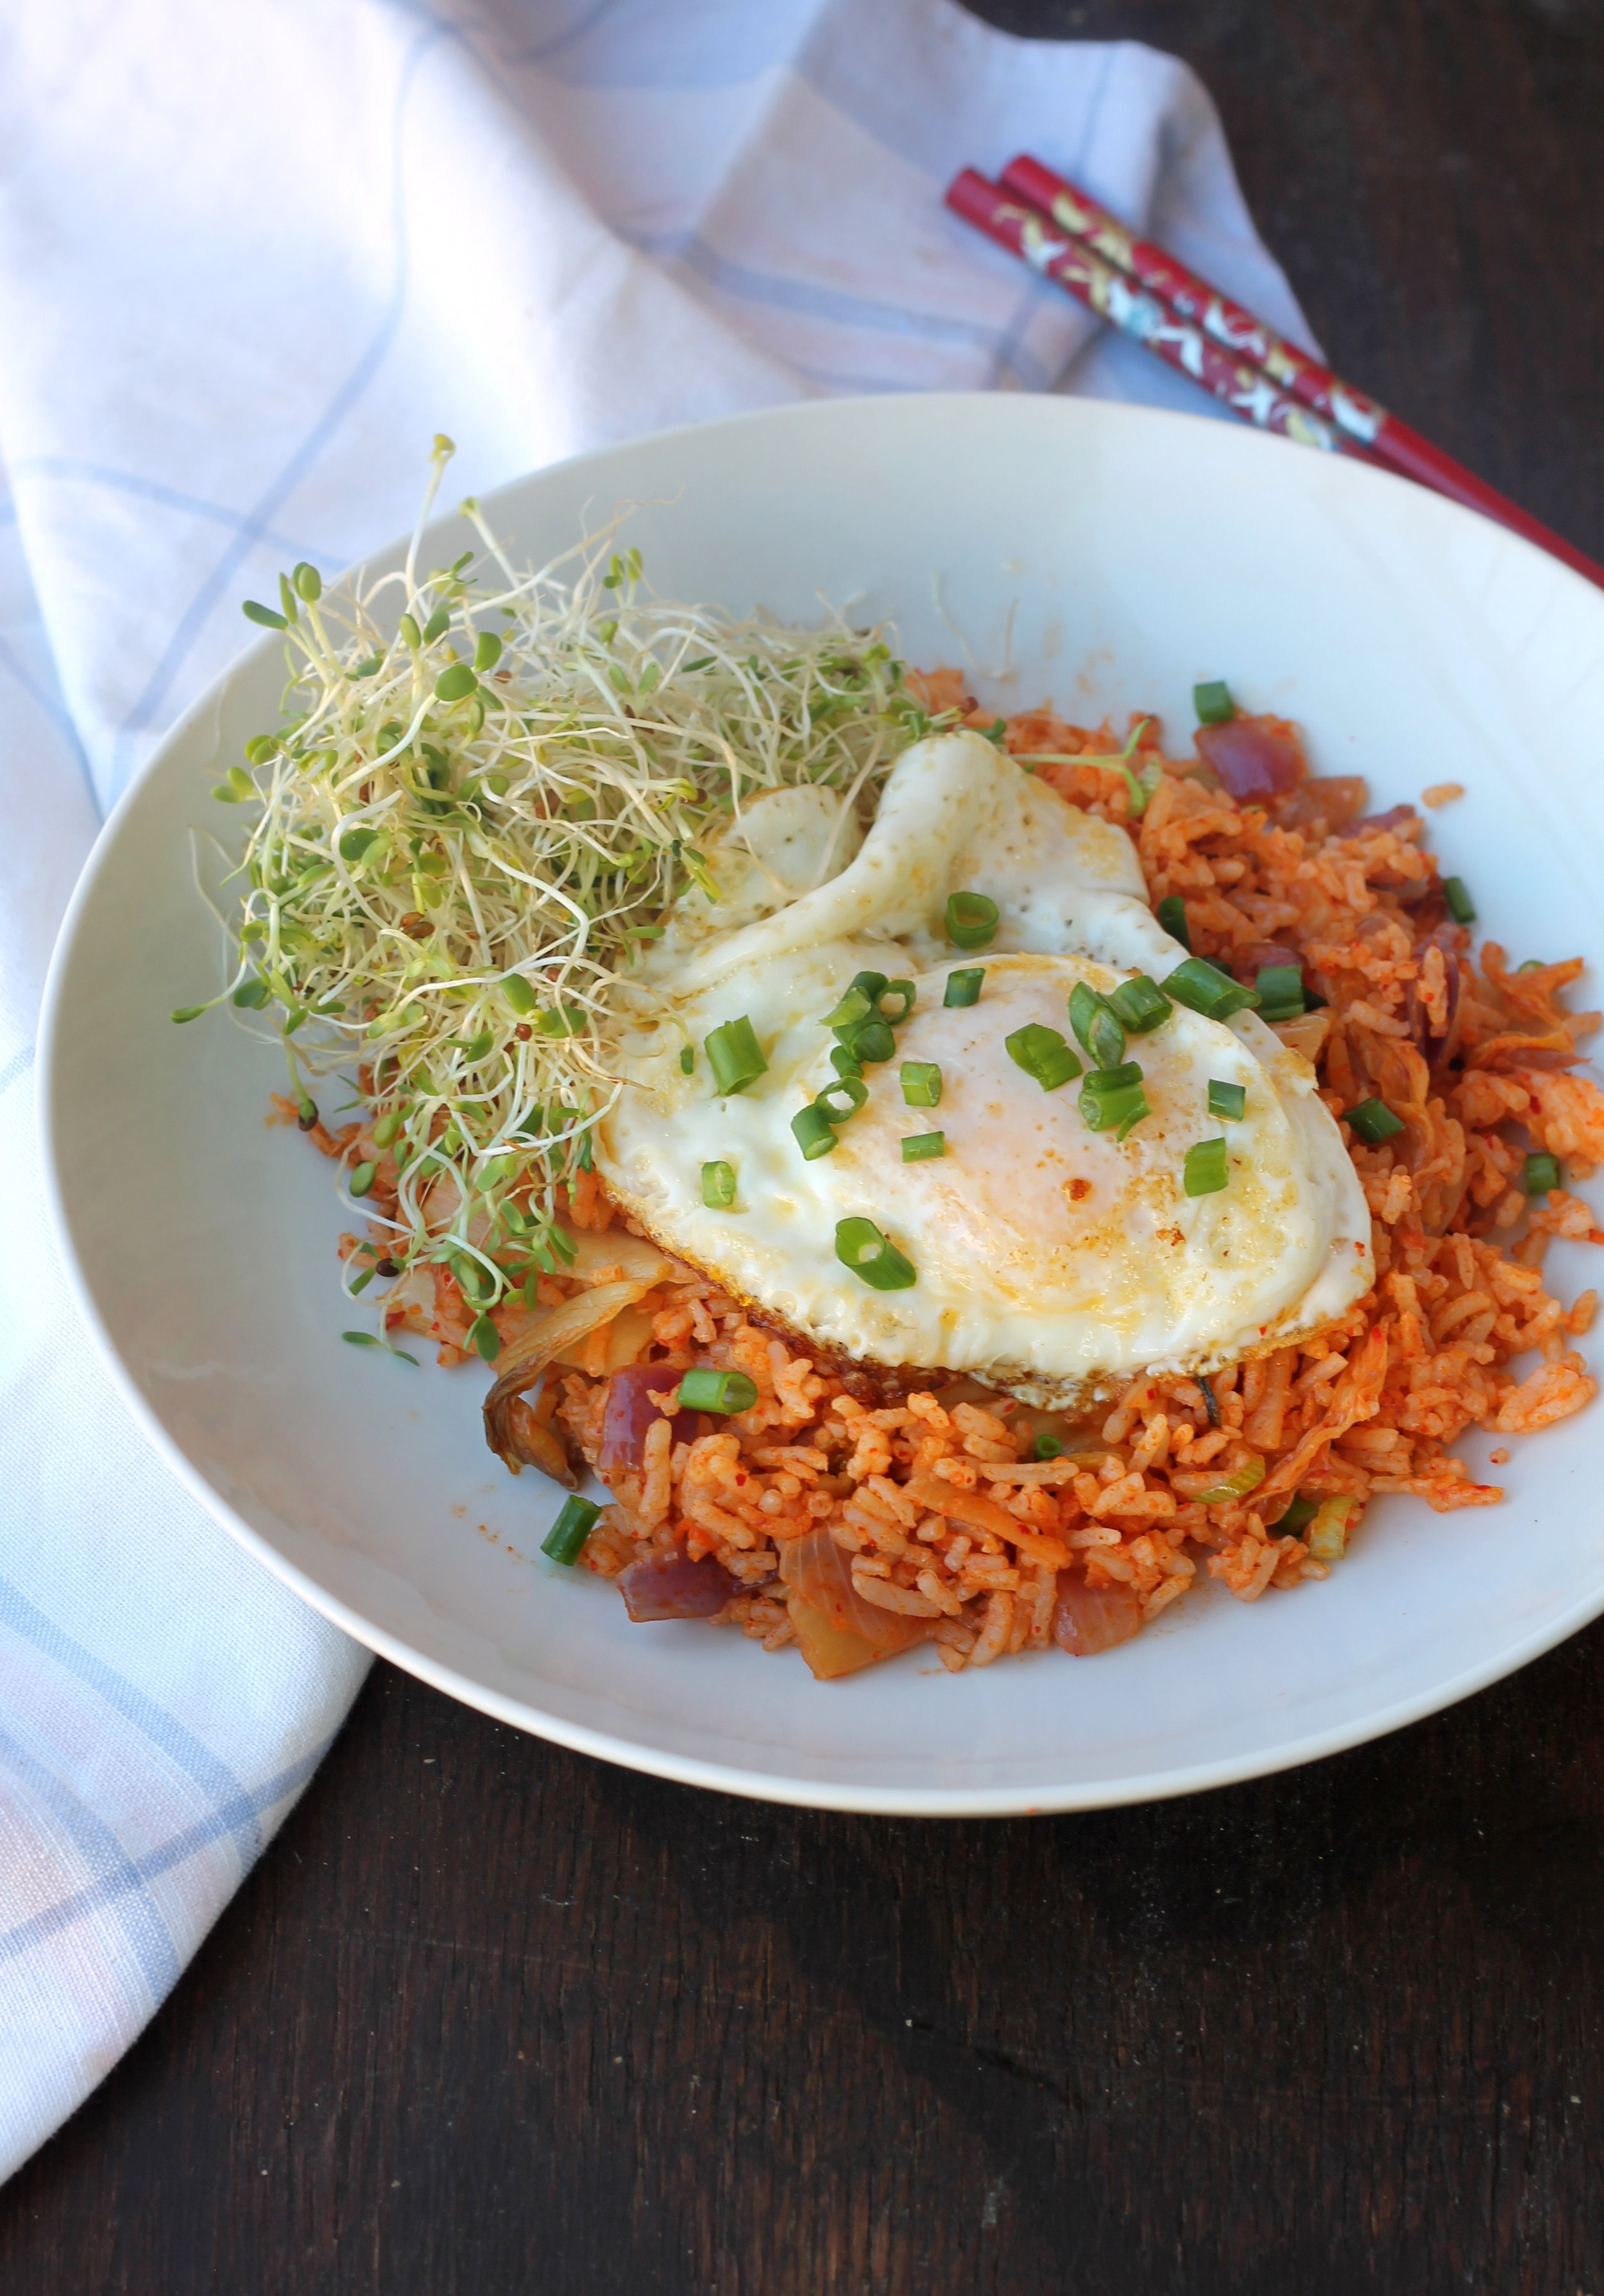 Kimchi Fried Rice is a simple, quick Korean inspired dish with rice & kimchi. You can enjoy it with eggs, tofu, or other meat for a wholesome meal.